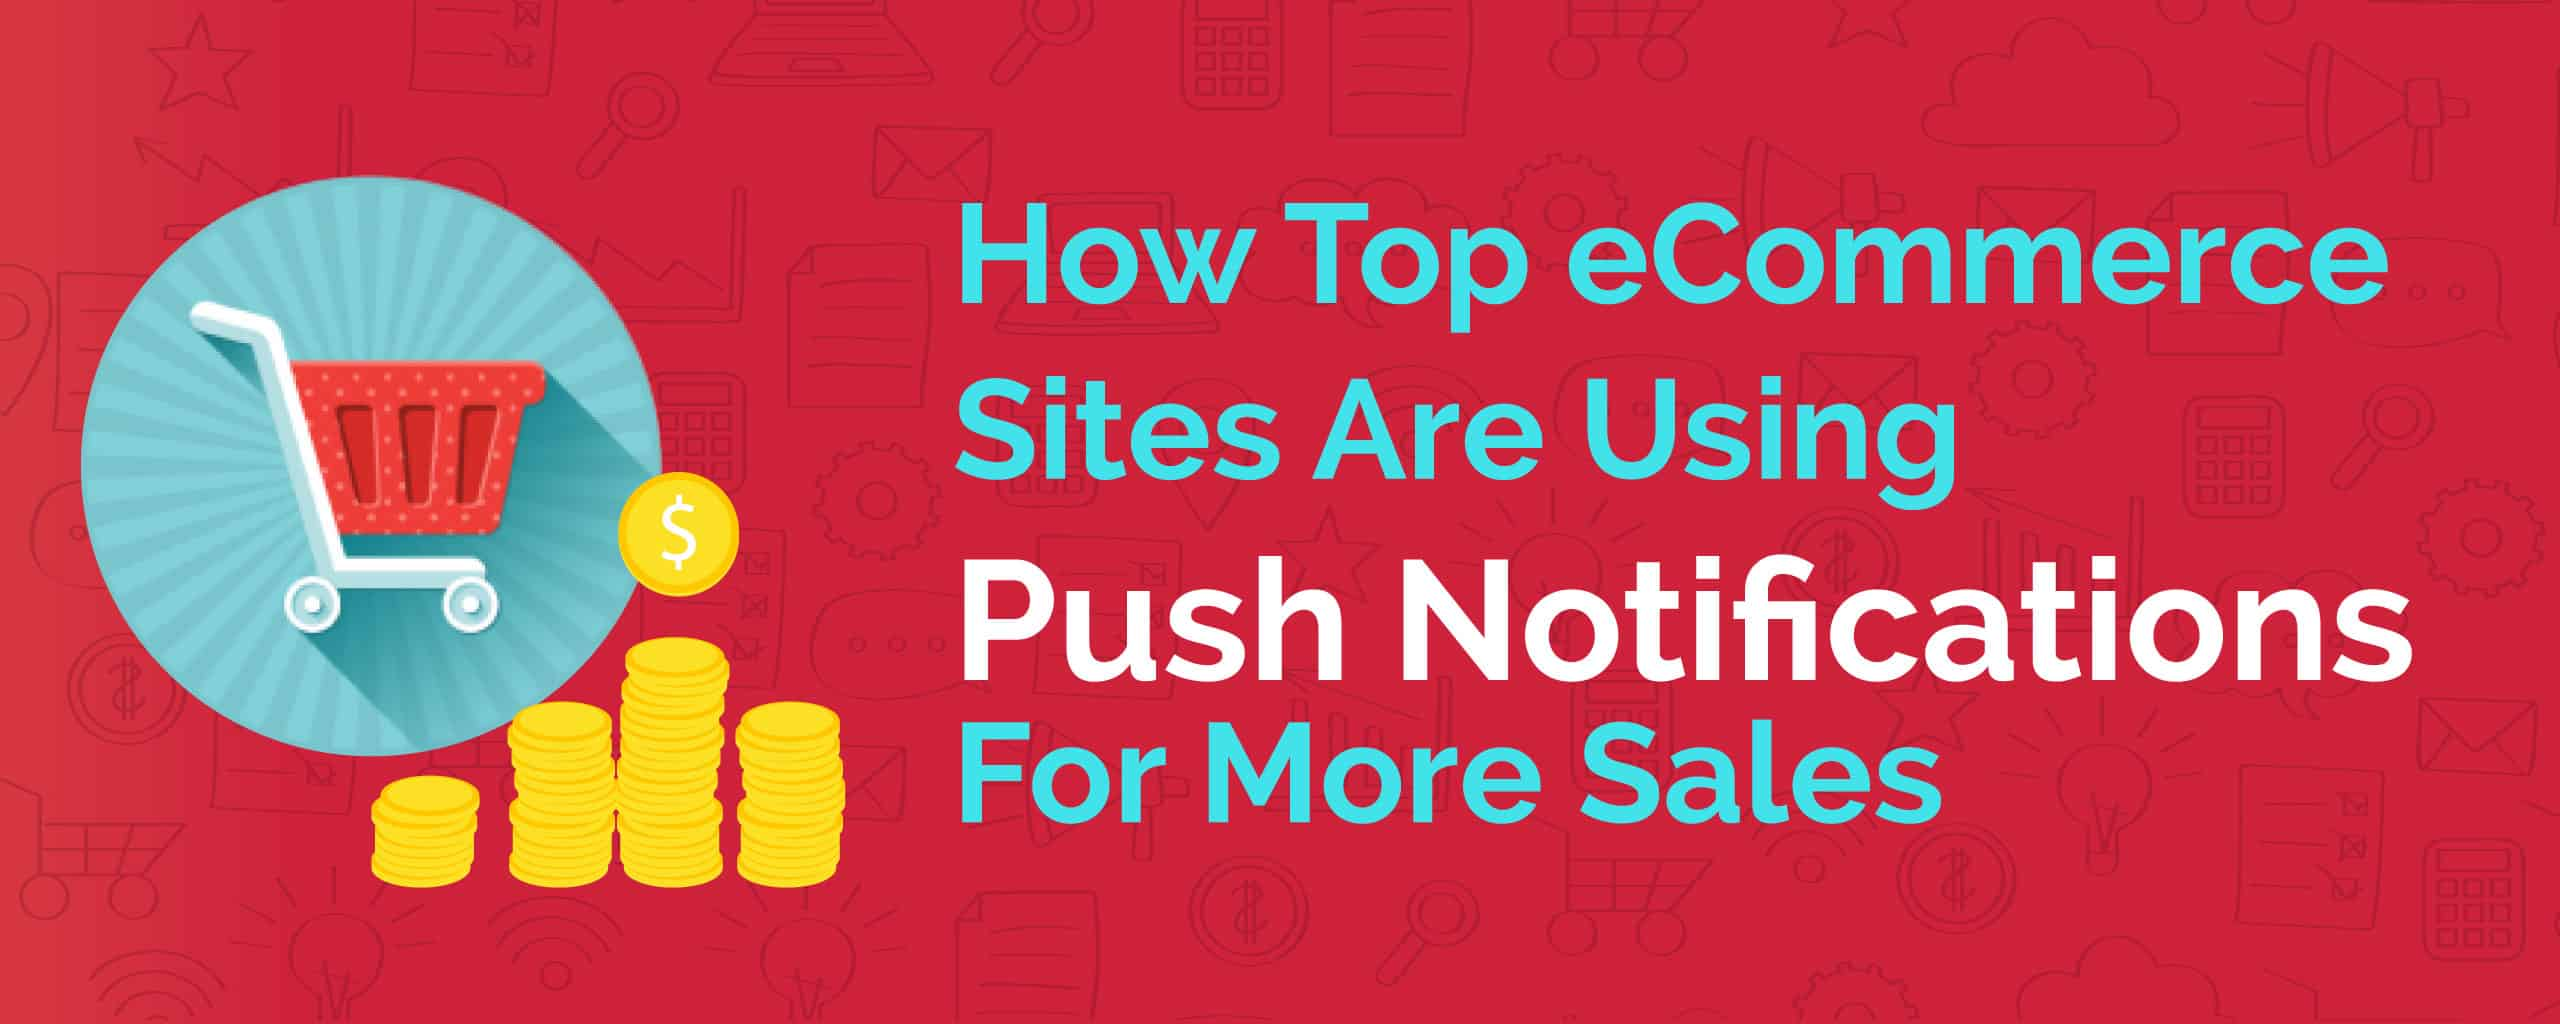 How-Top-eCommerce-Sites-Are-Using-Push-Notifications-For-More-Sales